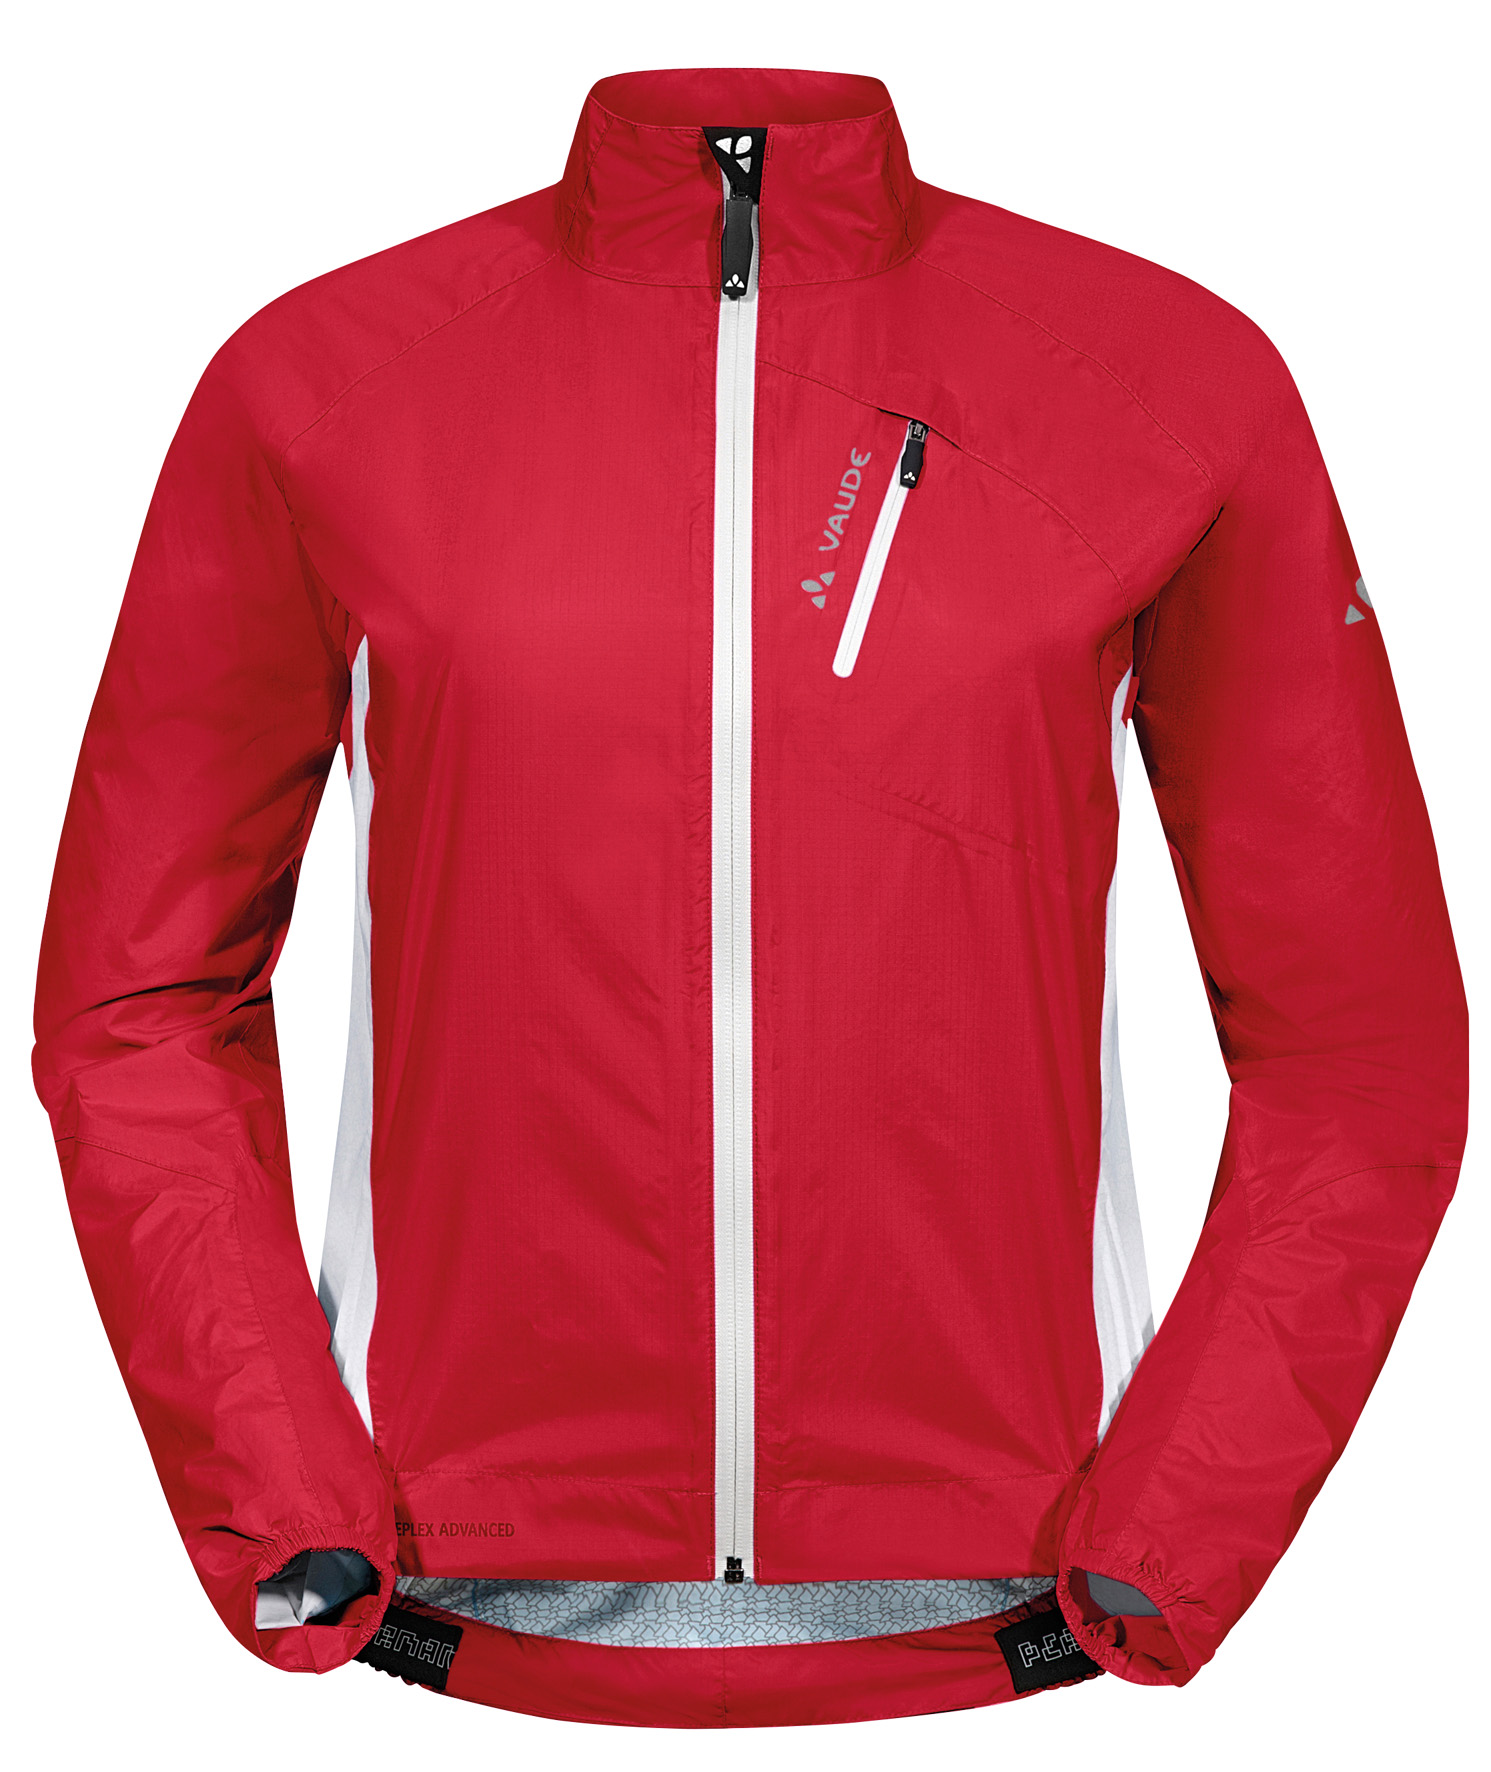 VAUDE Women´s Spray Jacket IV red Größe 44 - schneider-sports